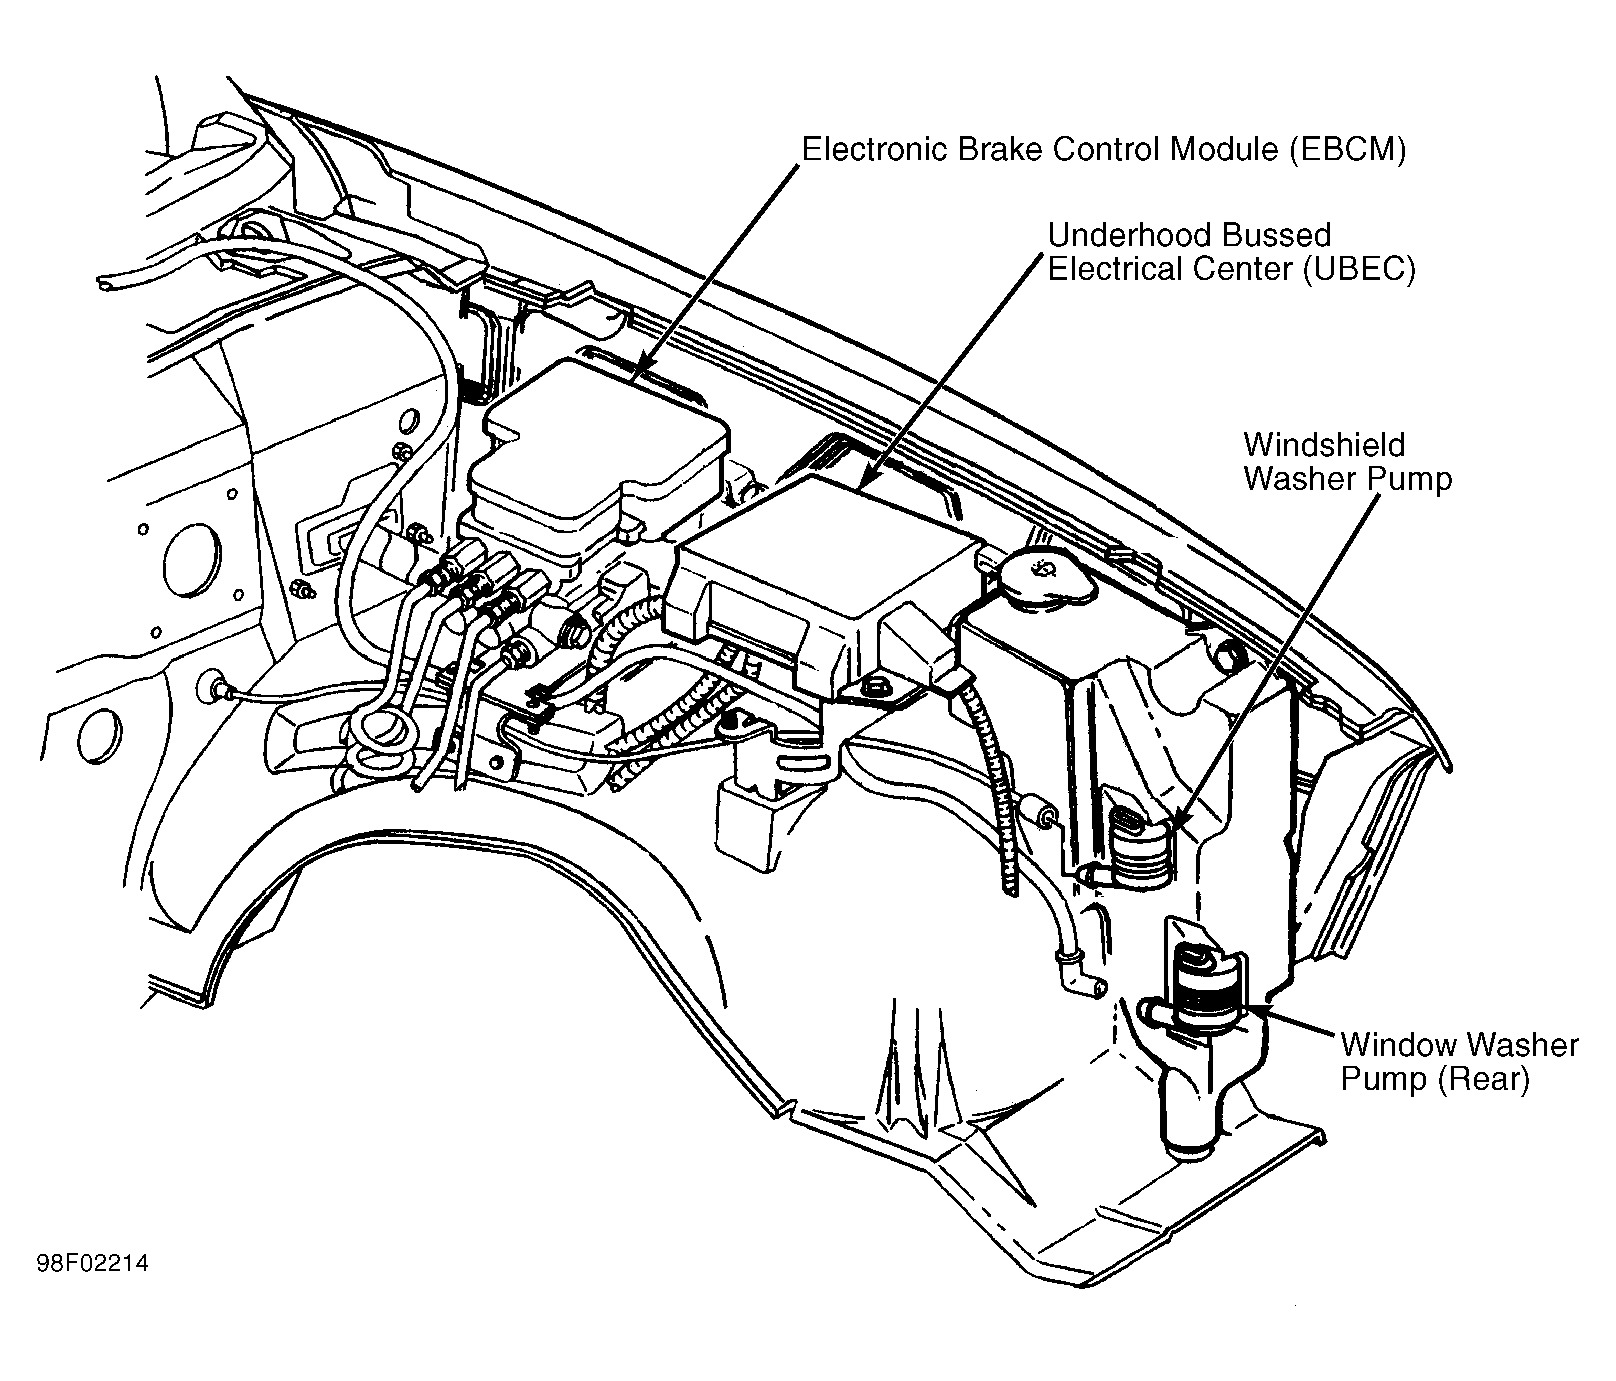 hight resolution of 1991 gmc s 15 jimmy fuse box diagram simple wiring schema gmc s15 jimmy 1991 gmc